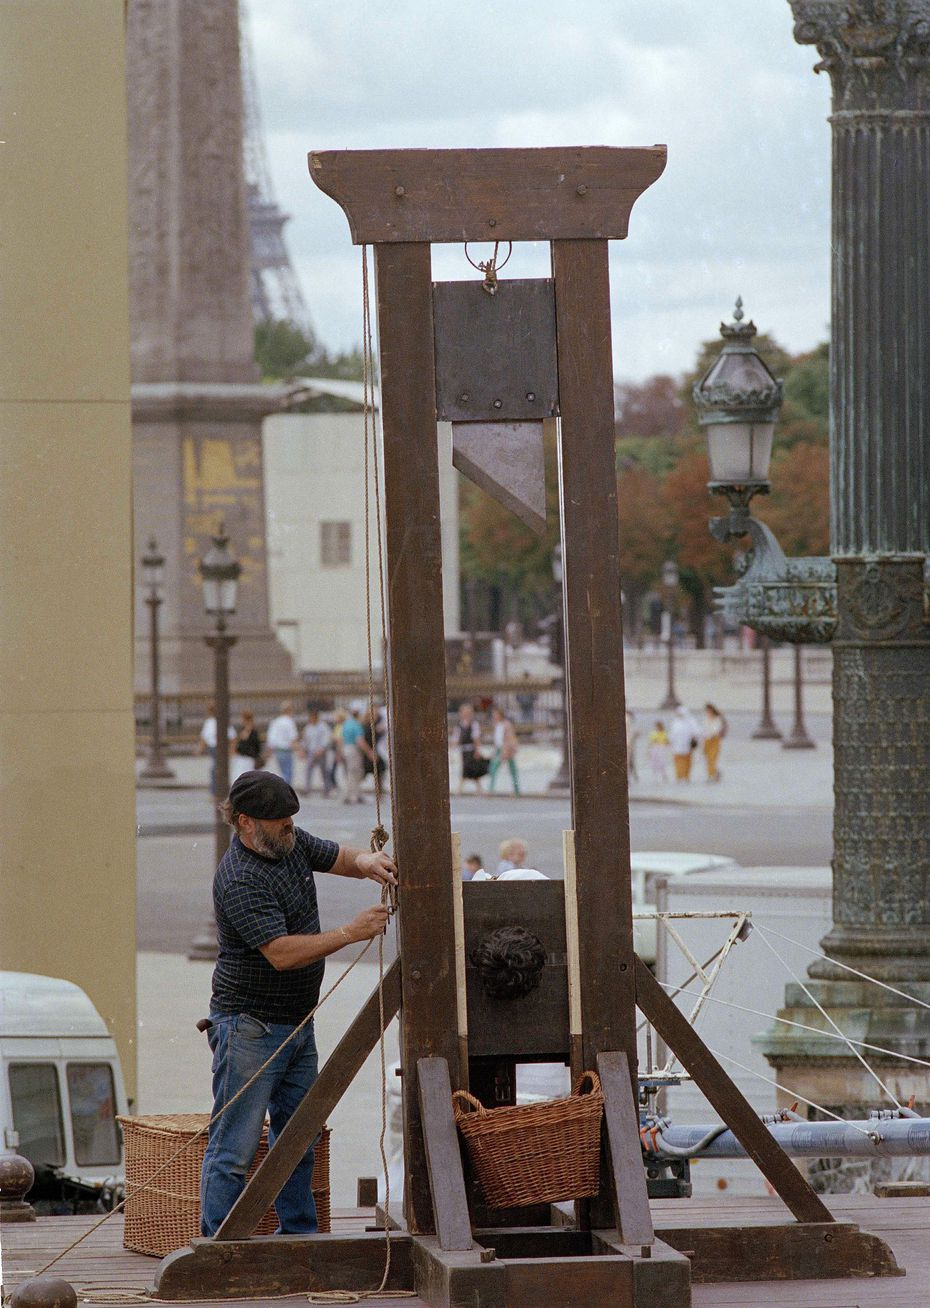 The head of a stuffed dummy emerges from the guillotine blade ready to be chopped off on Place de la Concorde in Paris, Aug. 20, 1988, as a worker sets its pulleys. The device was installed for the filming of a TV series on the French Revolution, at the very spot it was used 200 years ago.